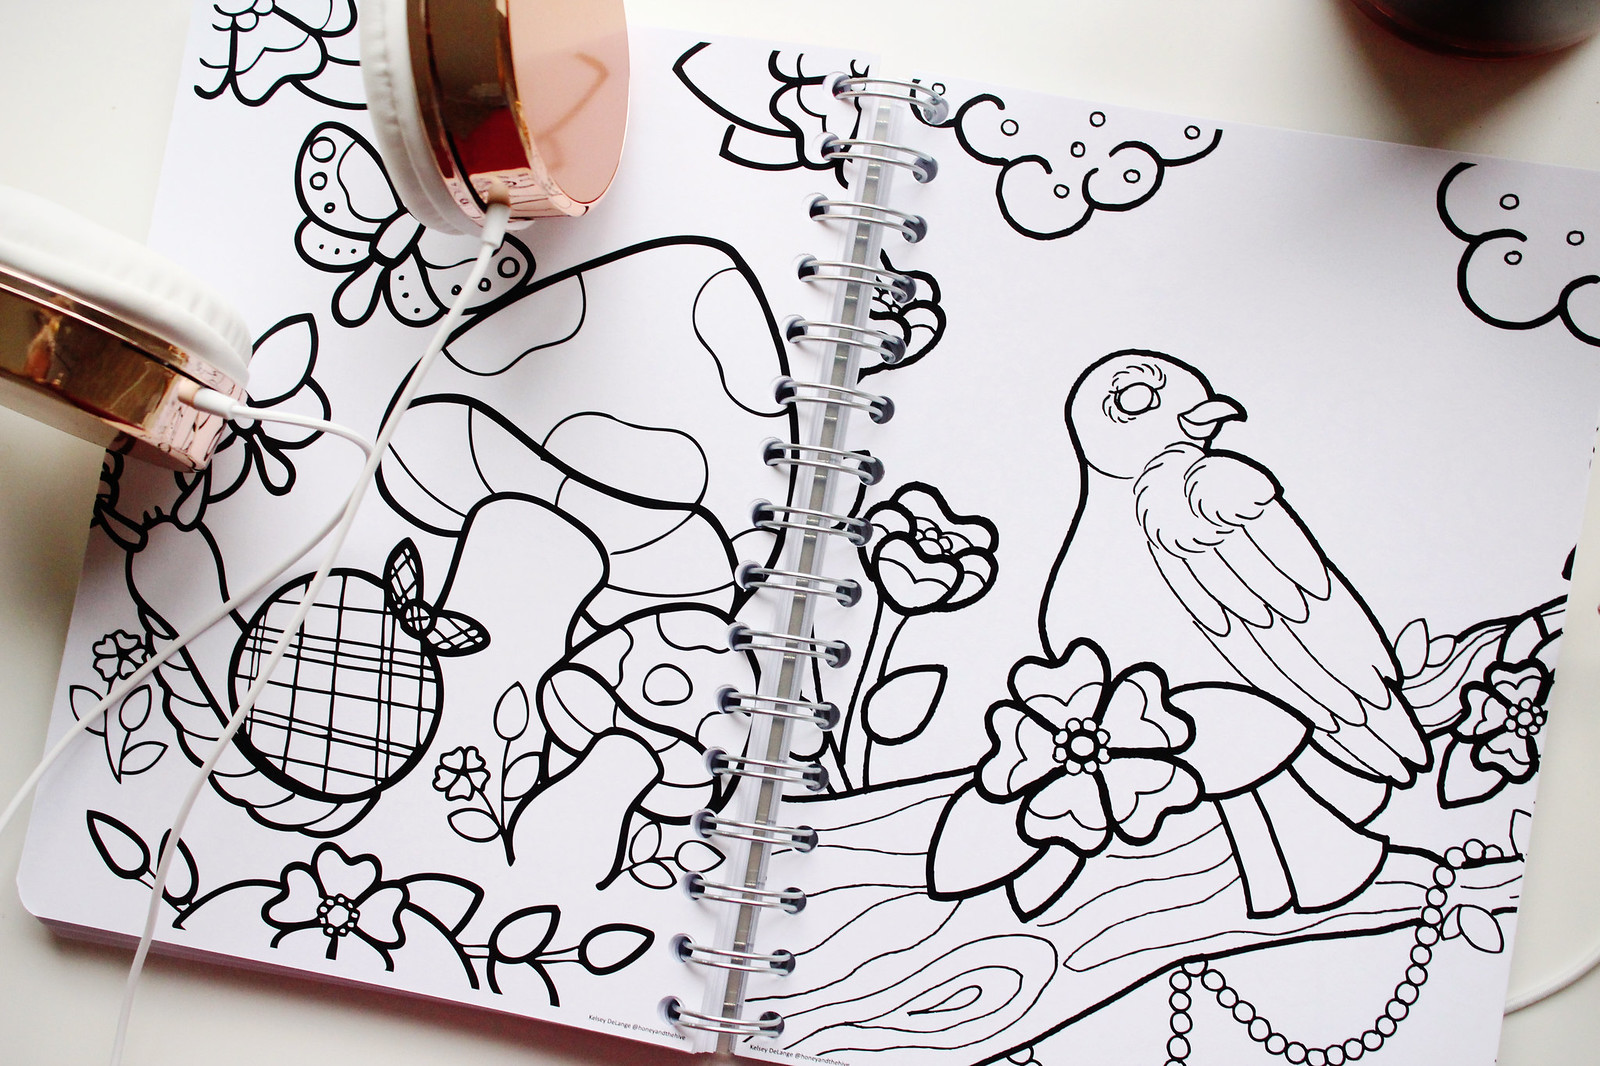 Coloring book in a planner